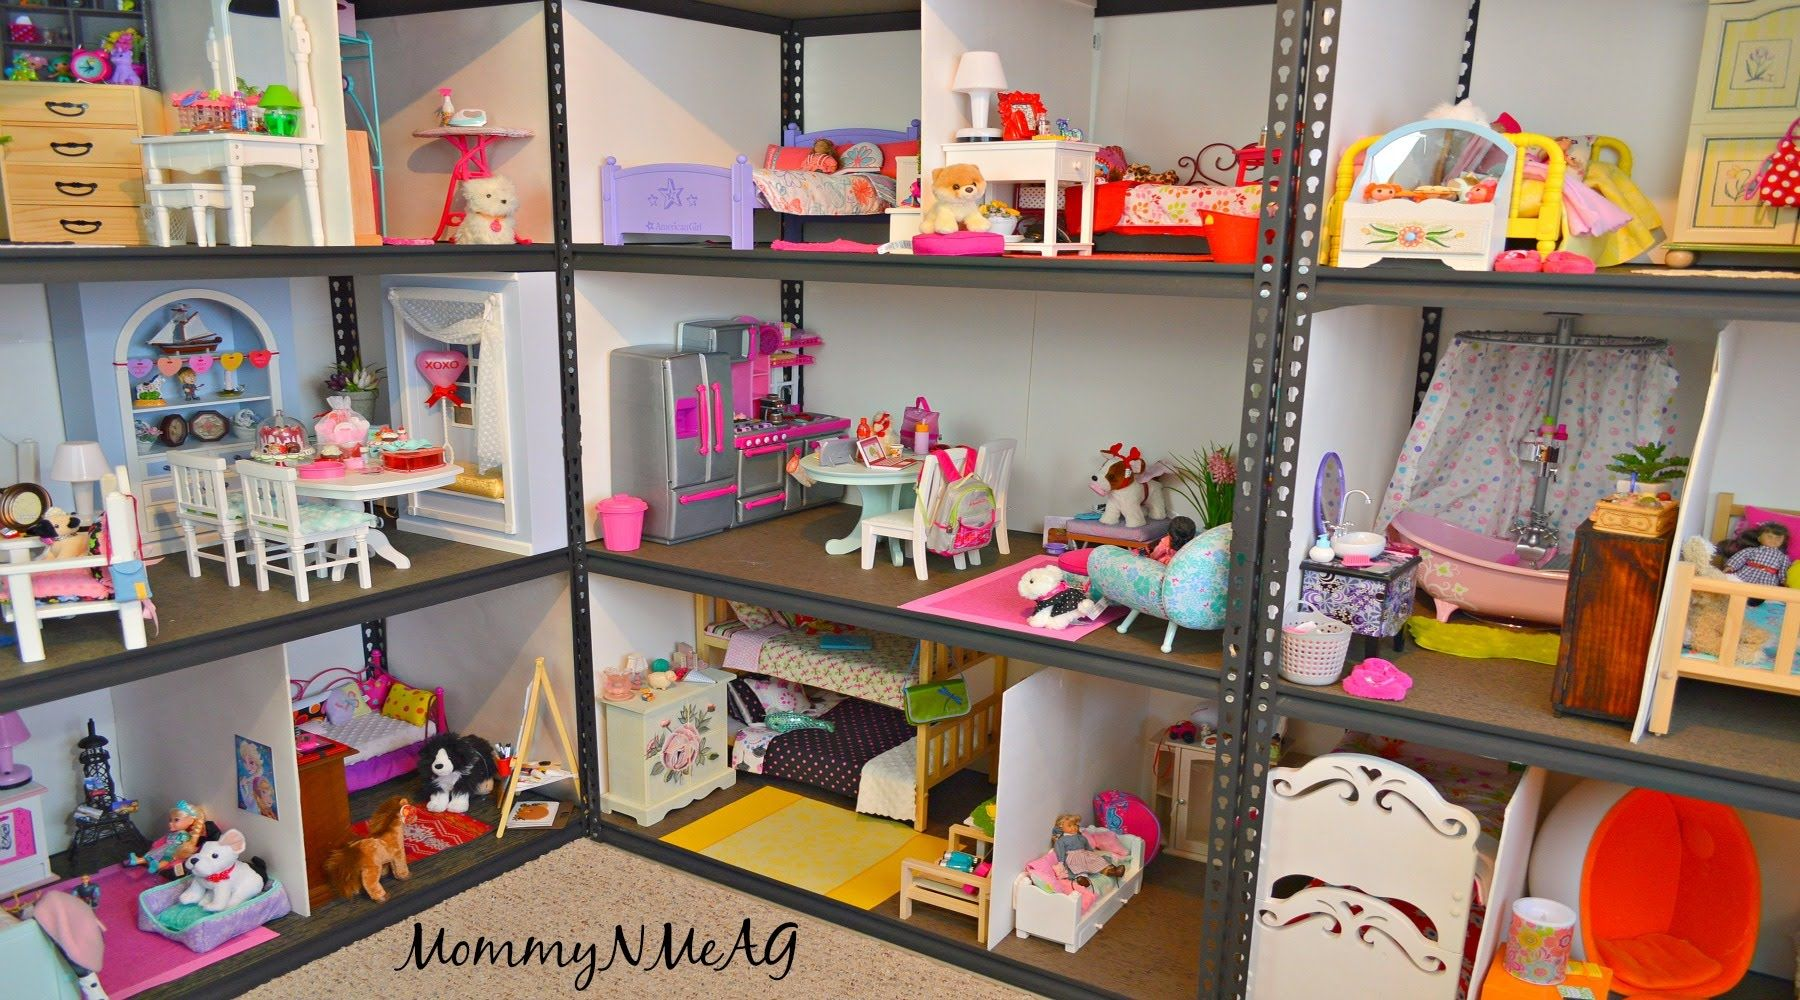 HUGE AMERICAN GIRL DOLL HOUSE !! | NEW 2016 Doll House Tour | MommyN MeAG